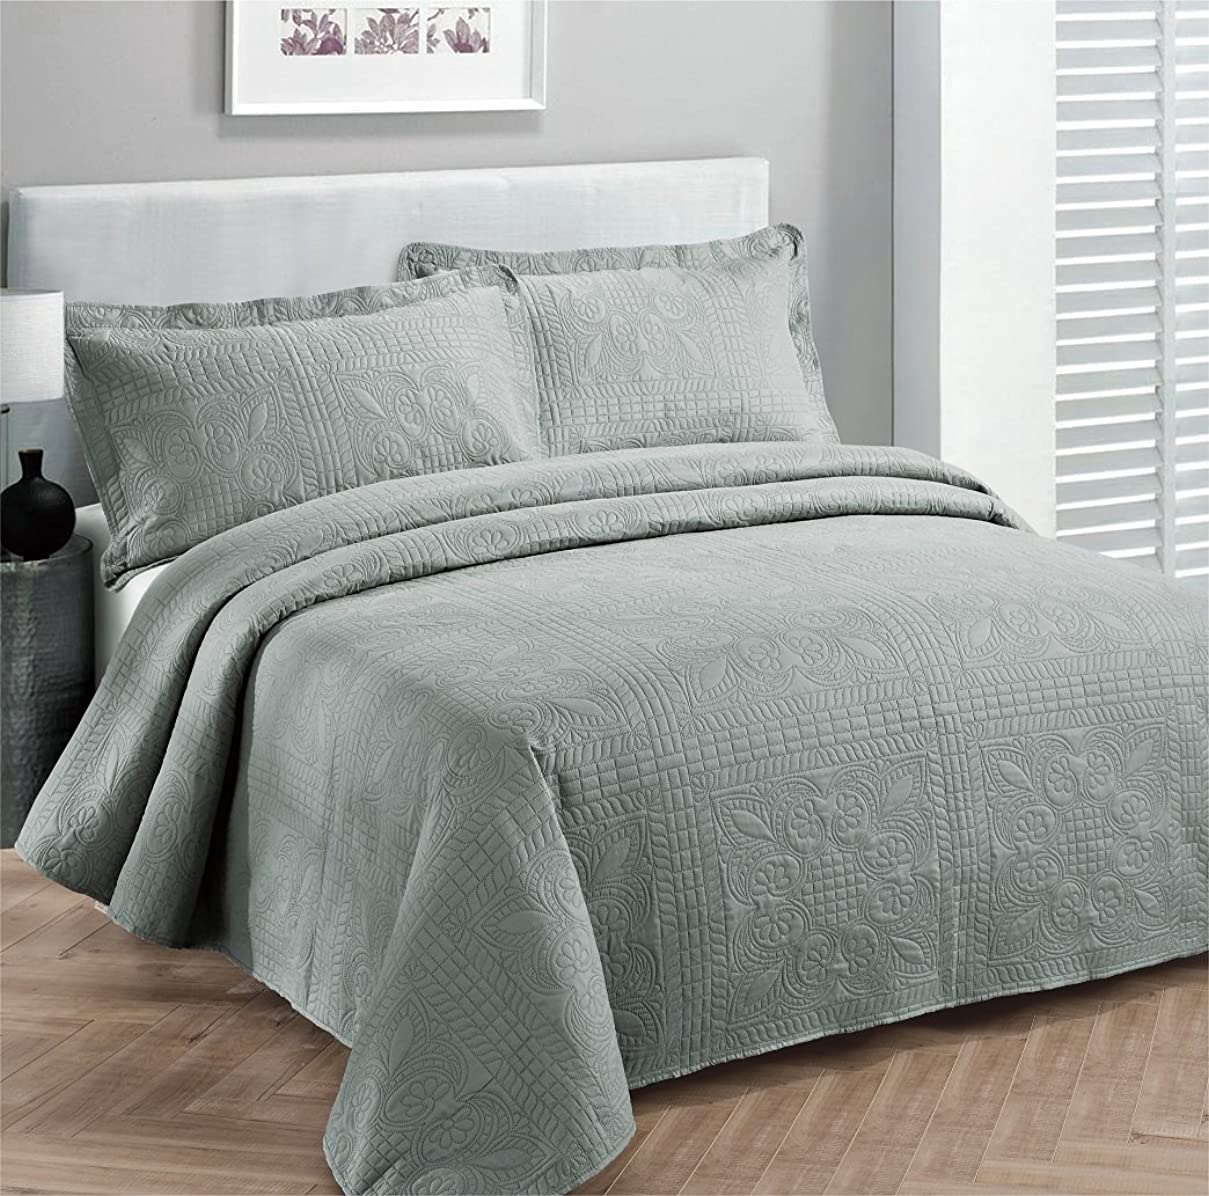 受け継ぐ私達アベニュー(Full/Queen, Grey) - Fancy Collection 3pc Luxury Bedspread Coverlet Embossed Bed Cover Solid Grey New Over Size 250cm x 270cm Full/queen